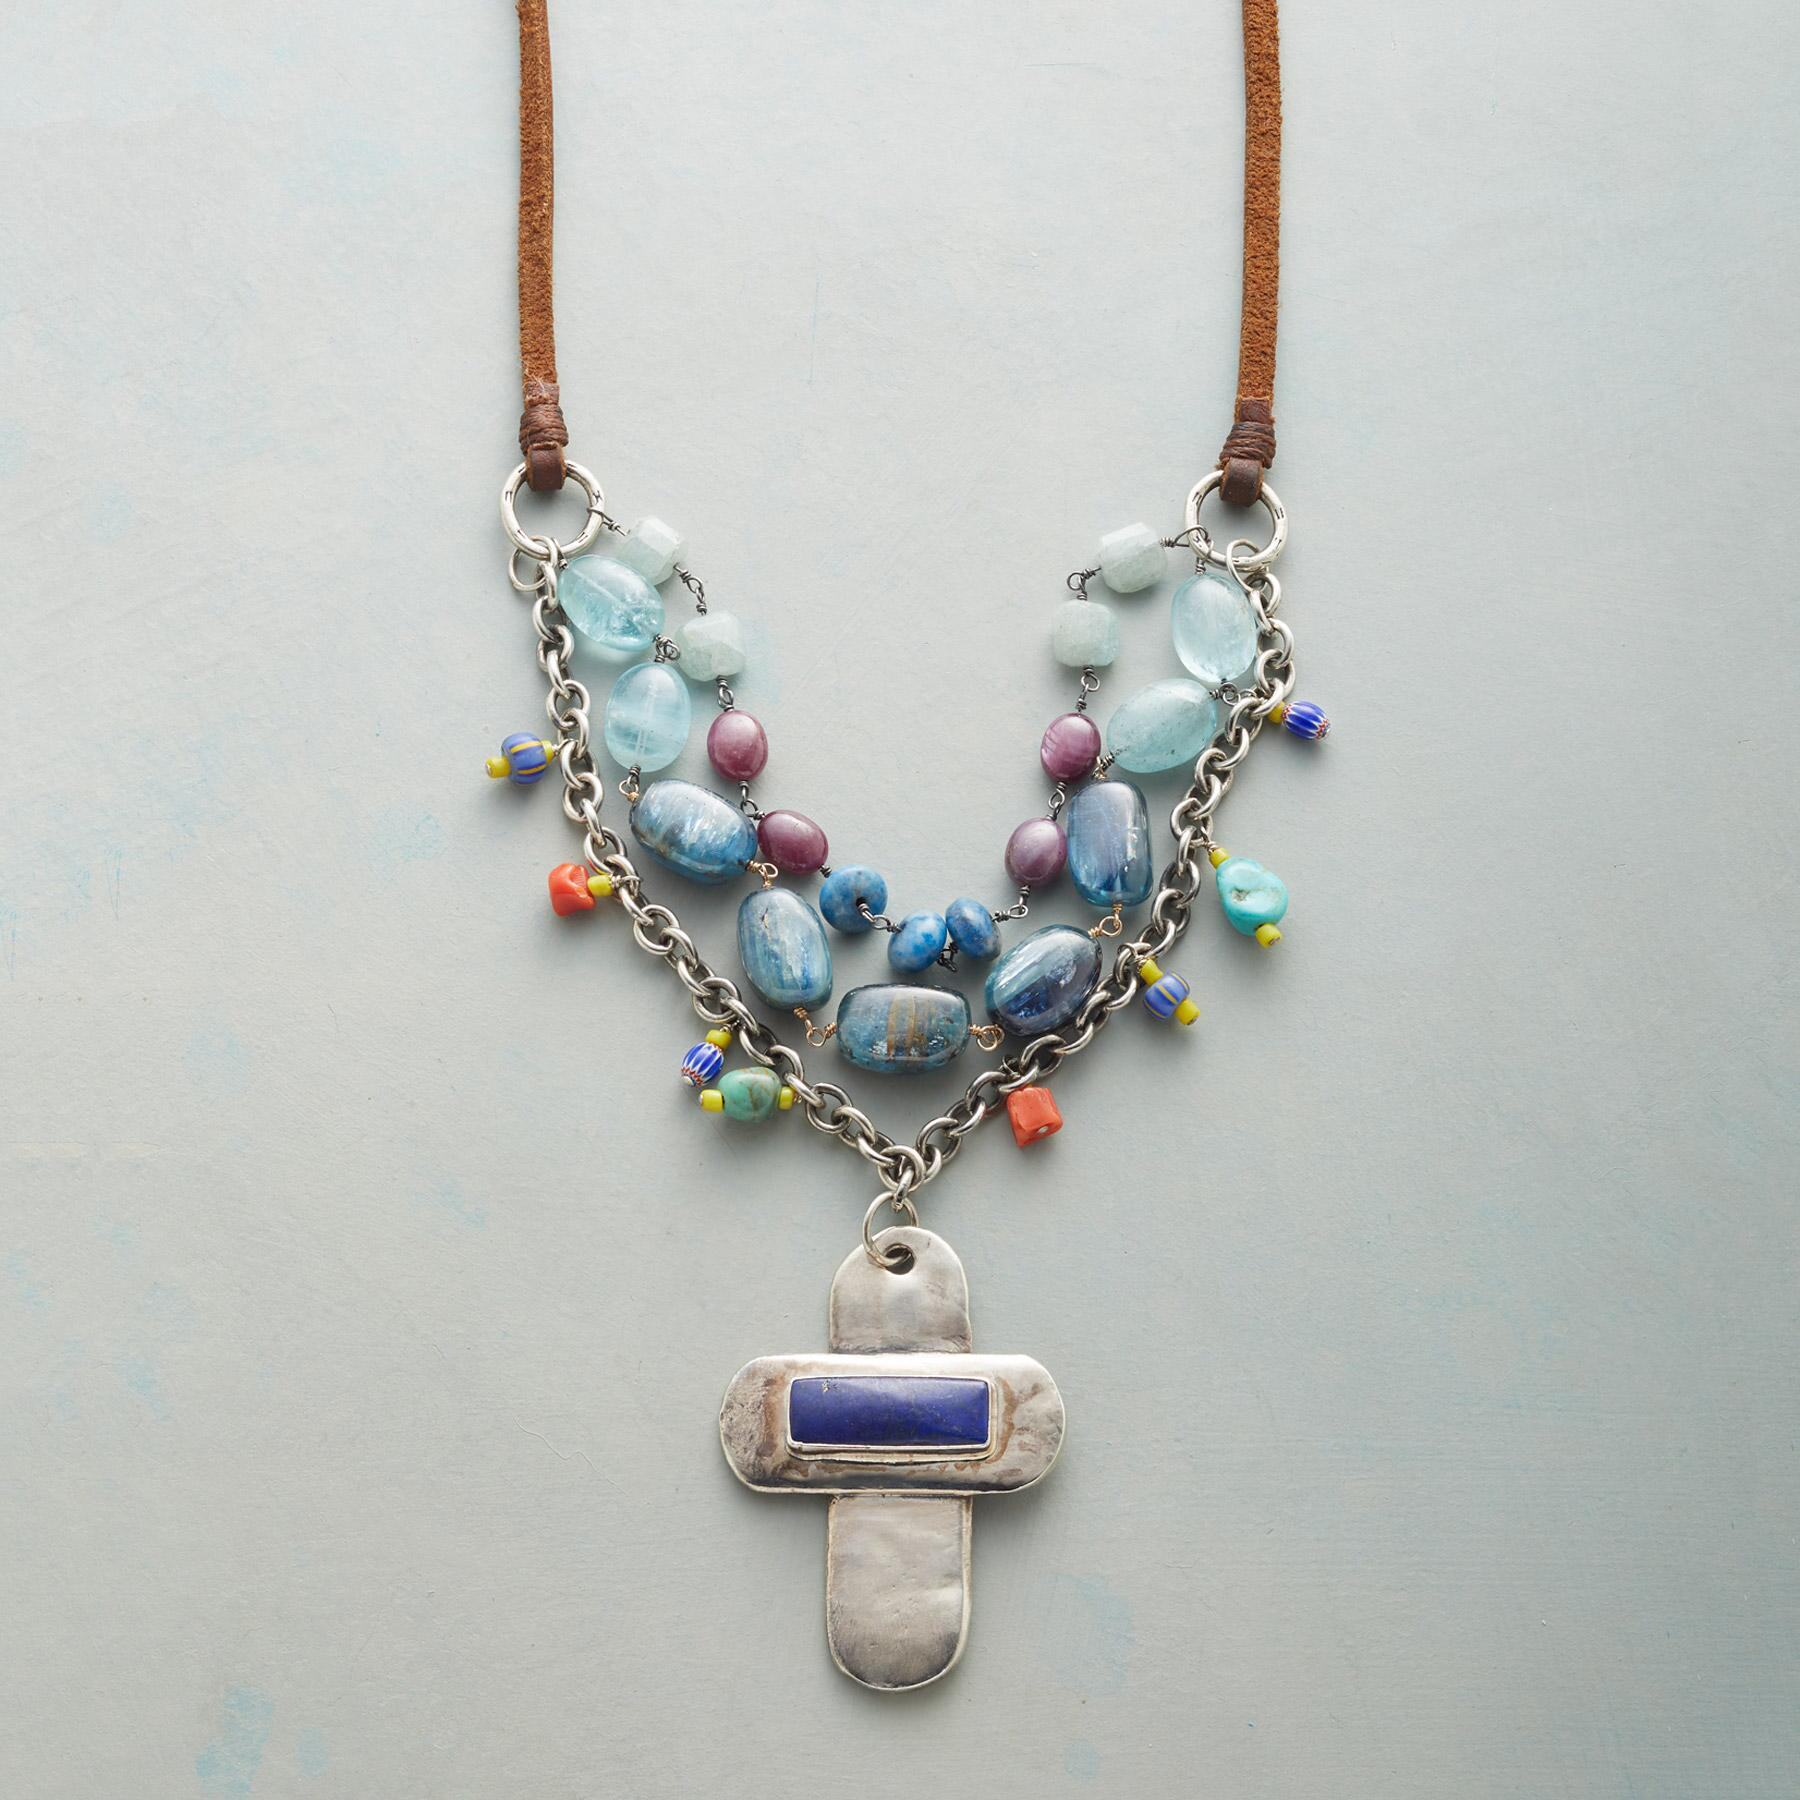 SACRED JOURNEY NECKLACE: View 1